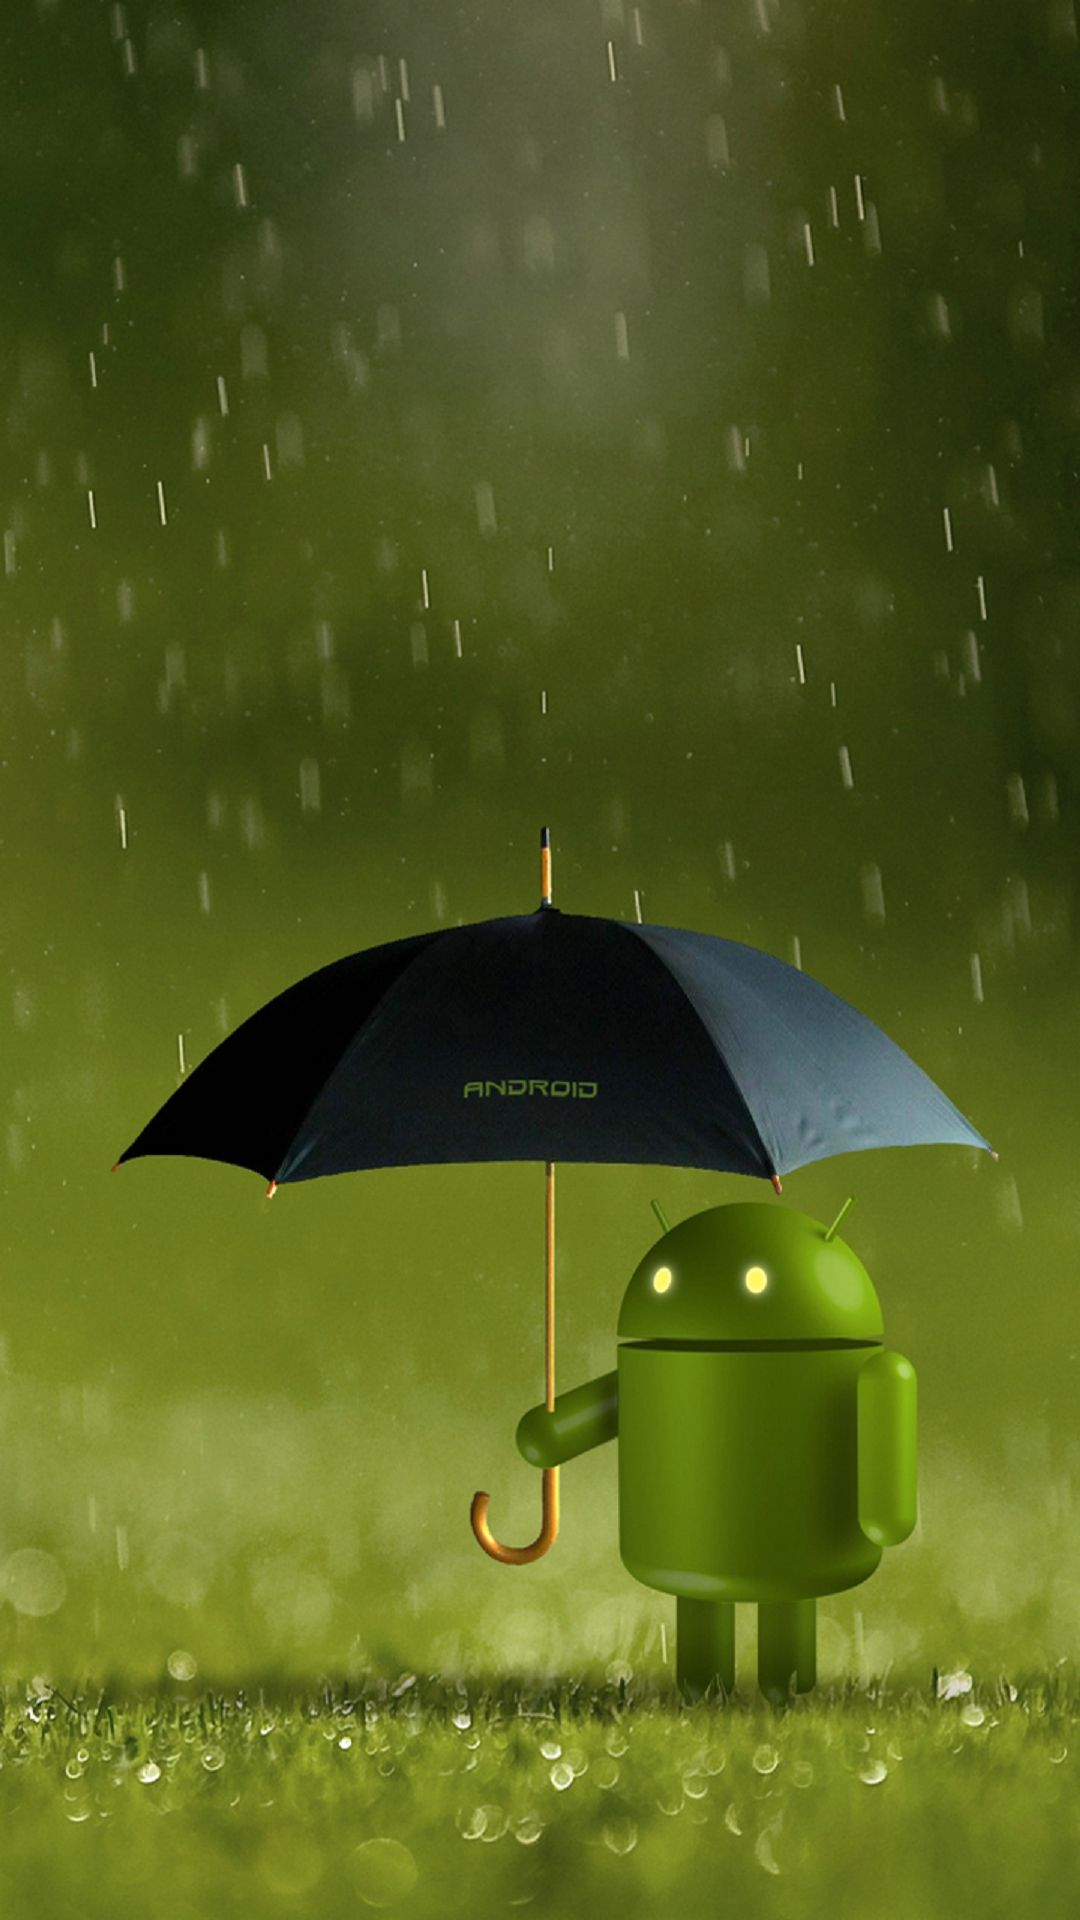 Android robot doll rain best htc one wallpapers for Wallpaper home android